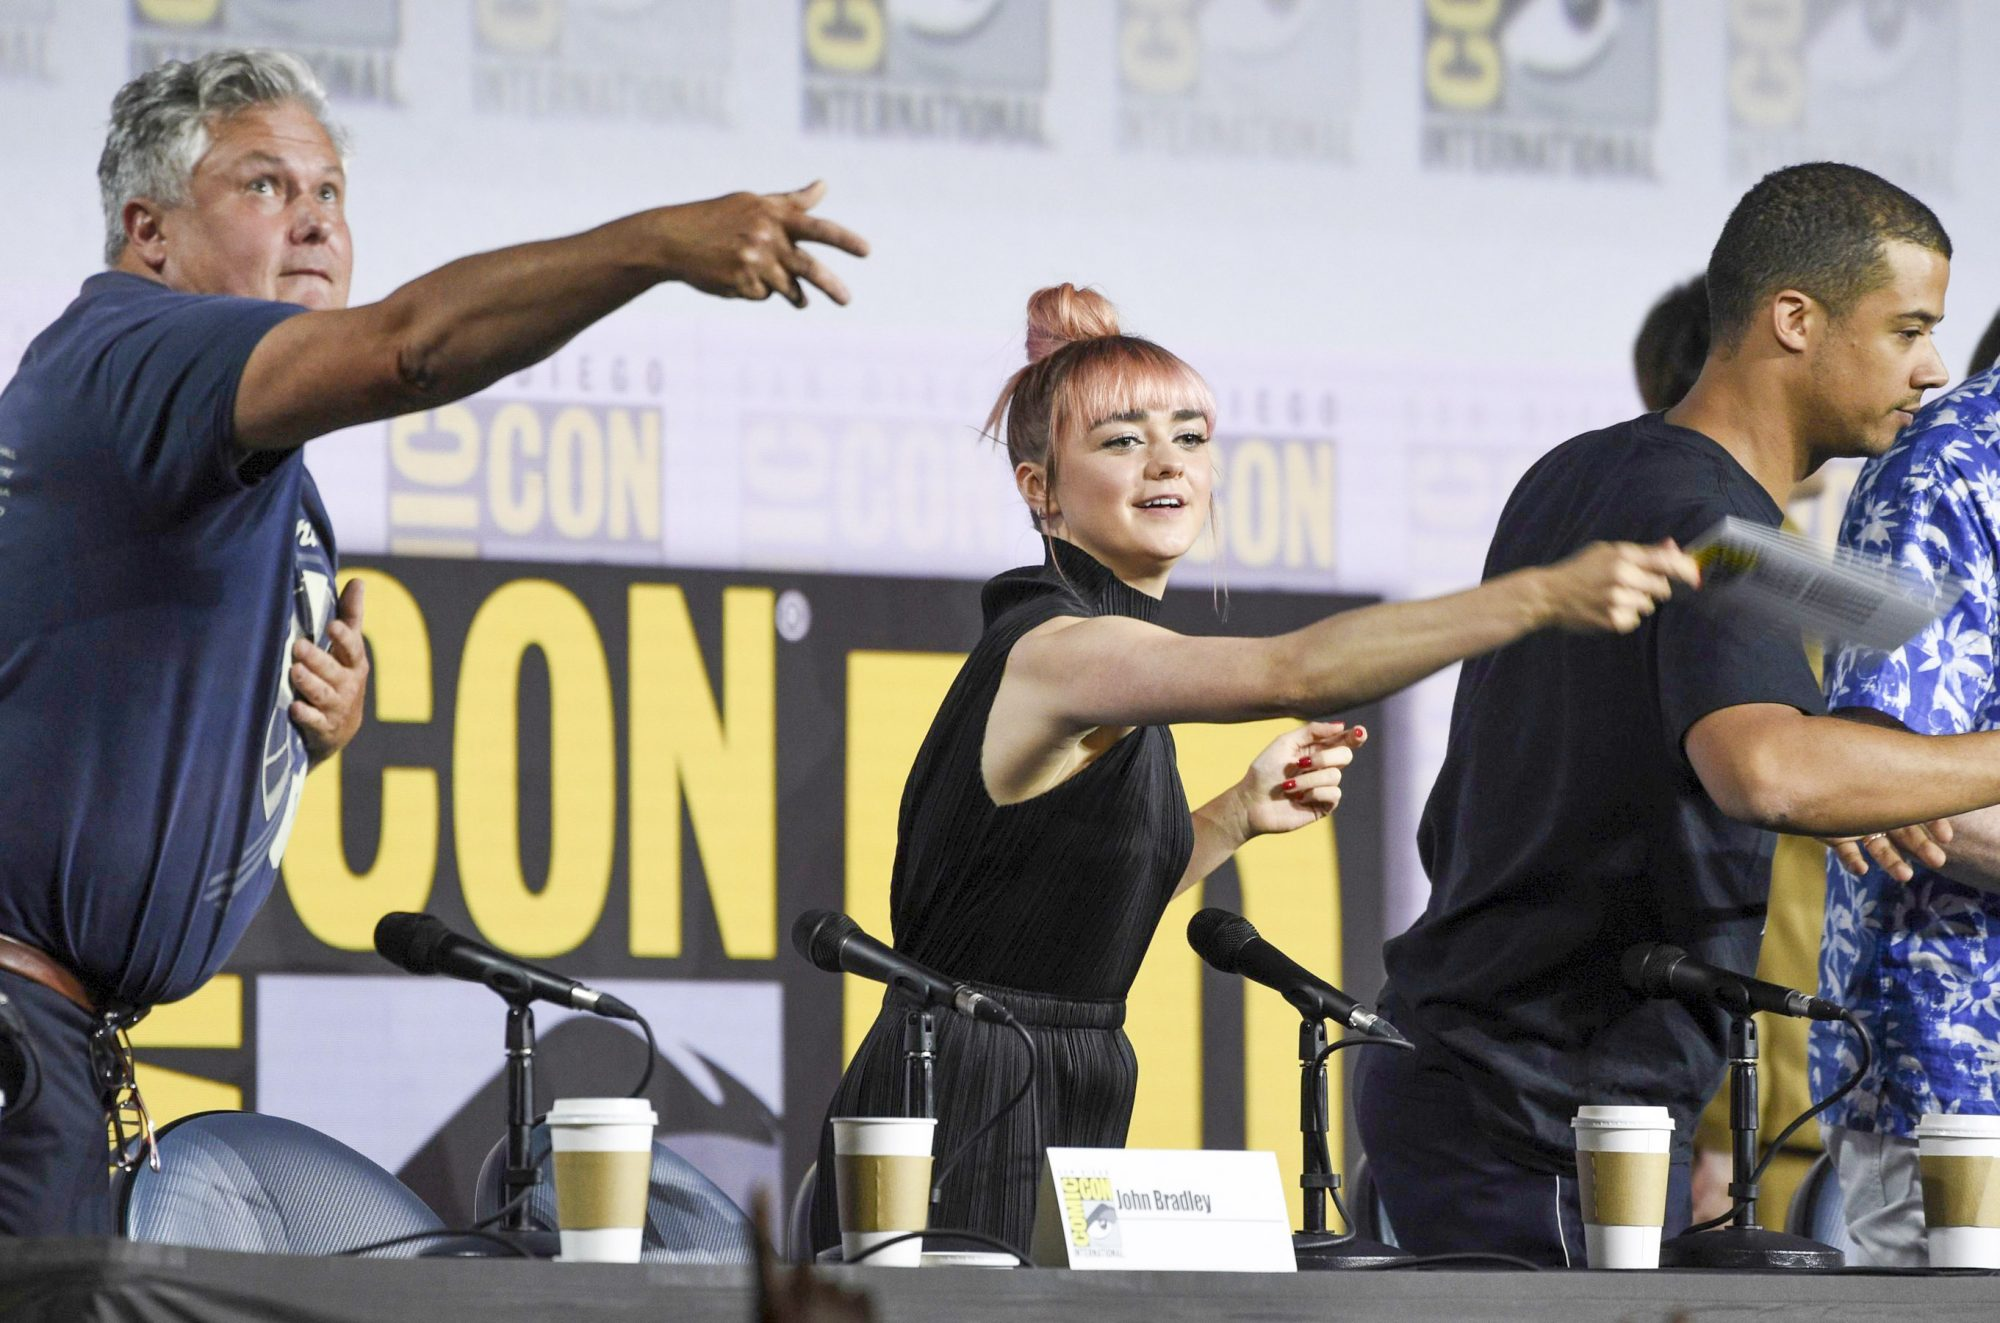 """Mandatory Credit: Photo by Chris Pizzello/Invision/AP/Shutterstock (10342099k) Conleth Hill, Maisie Williams, Jacob Anderson. Conleth Hill, from left, Maisie Williams and Jacob Anderson throw their name card to the audience at the conclusion of the """"Game of Thrones"""" panel on day two of Comic-Con International, in San Diego 2019 Comic-Con - """"Game of Thrones"""" Panel, San Diego, USA - 19 Jul 2019"""